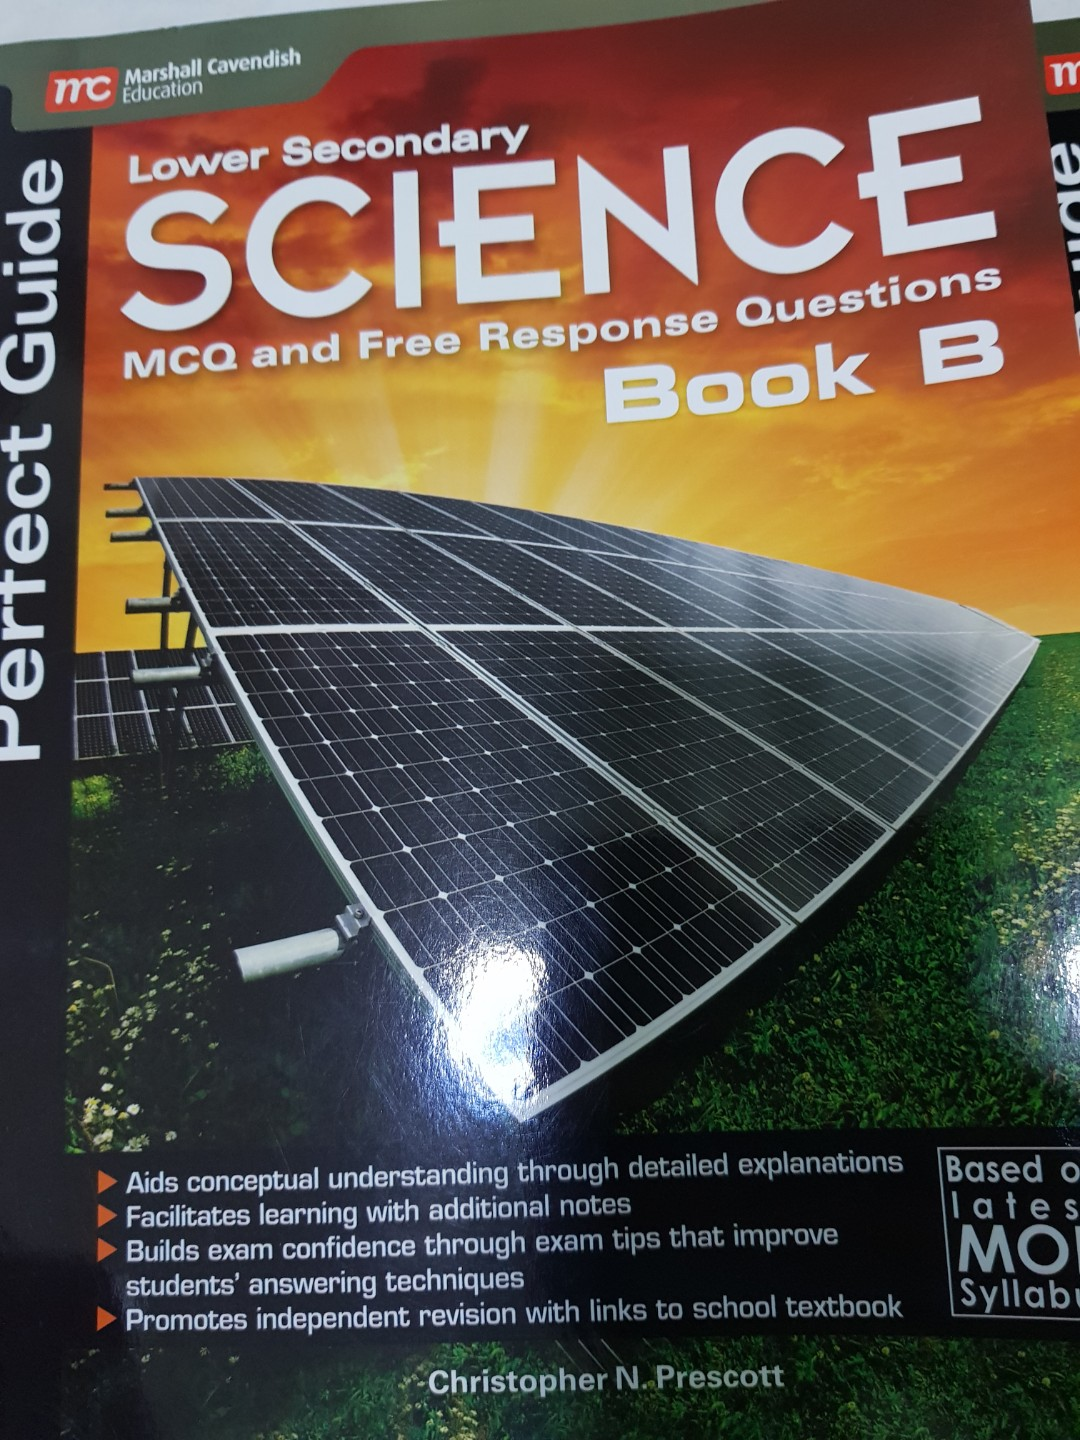 Lower Secondary Science Assessment Book